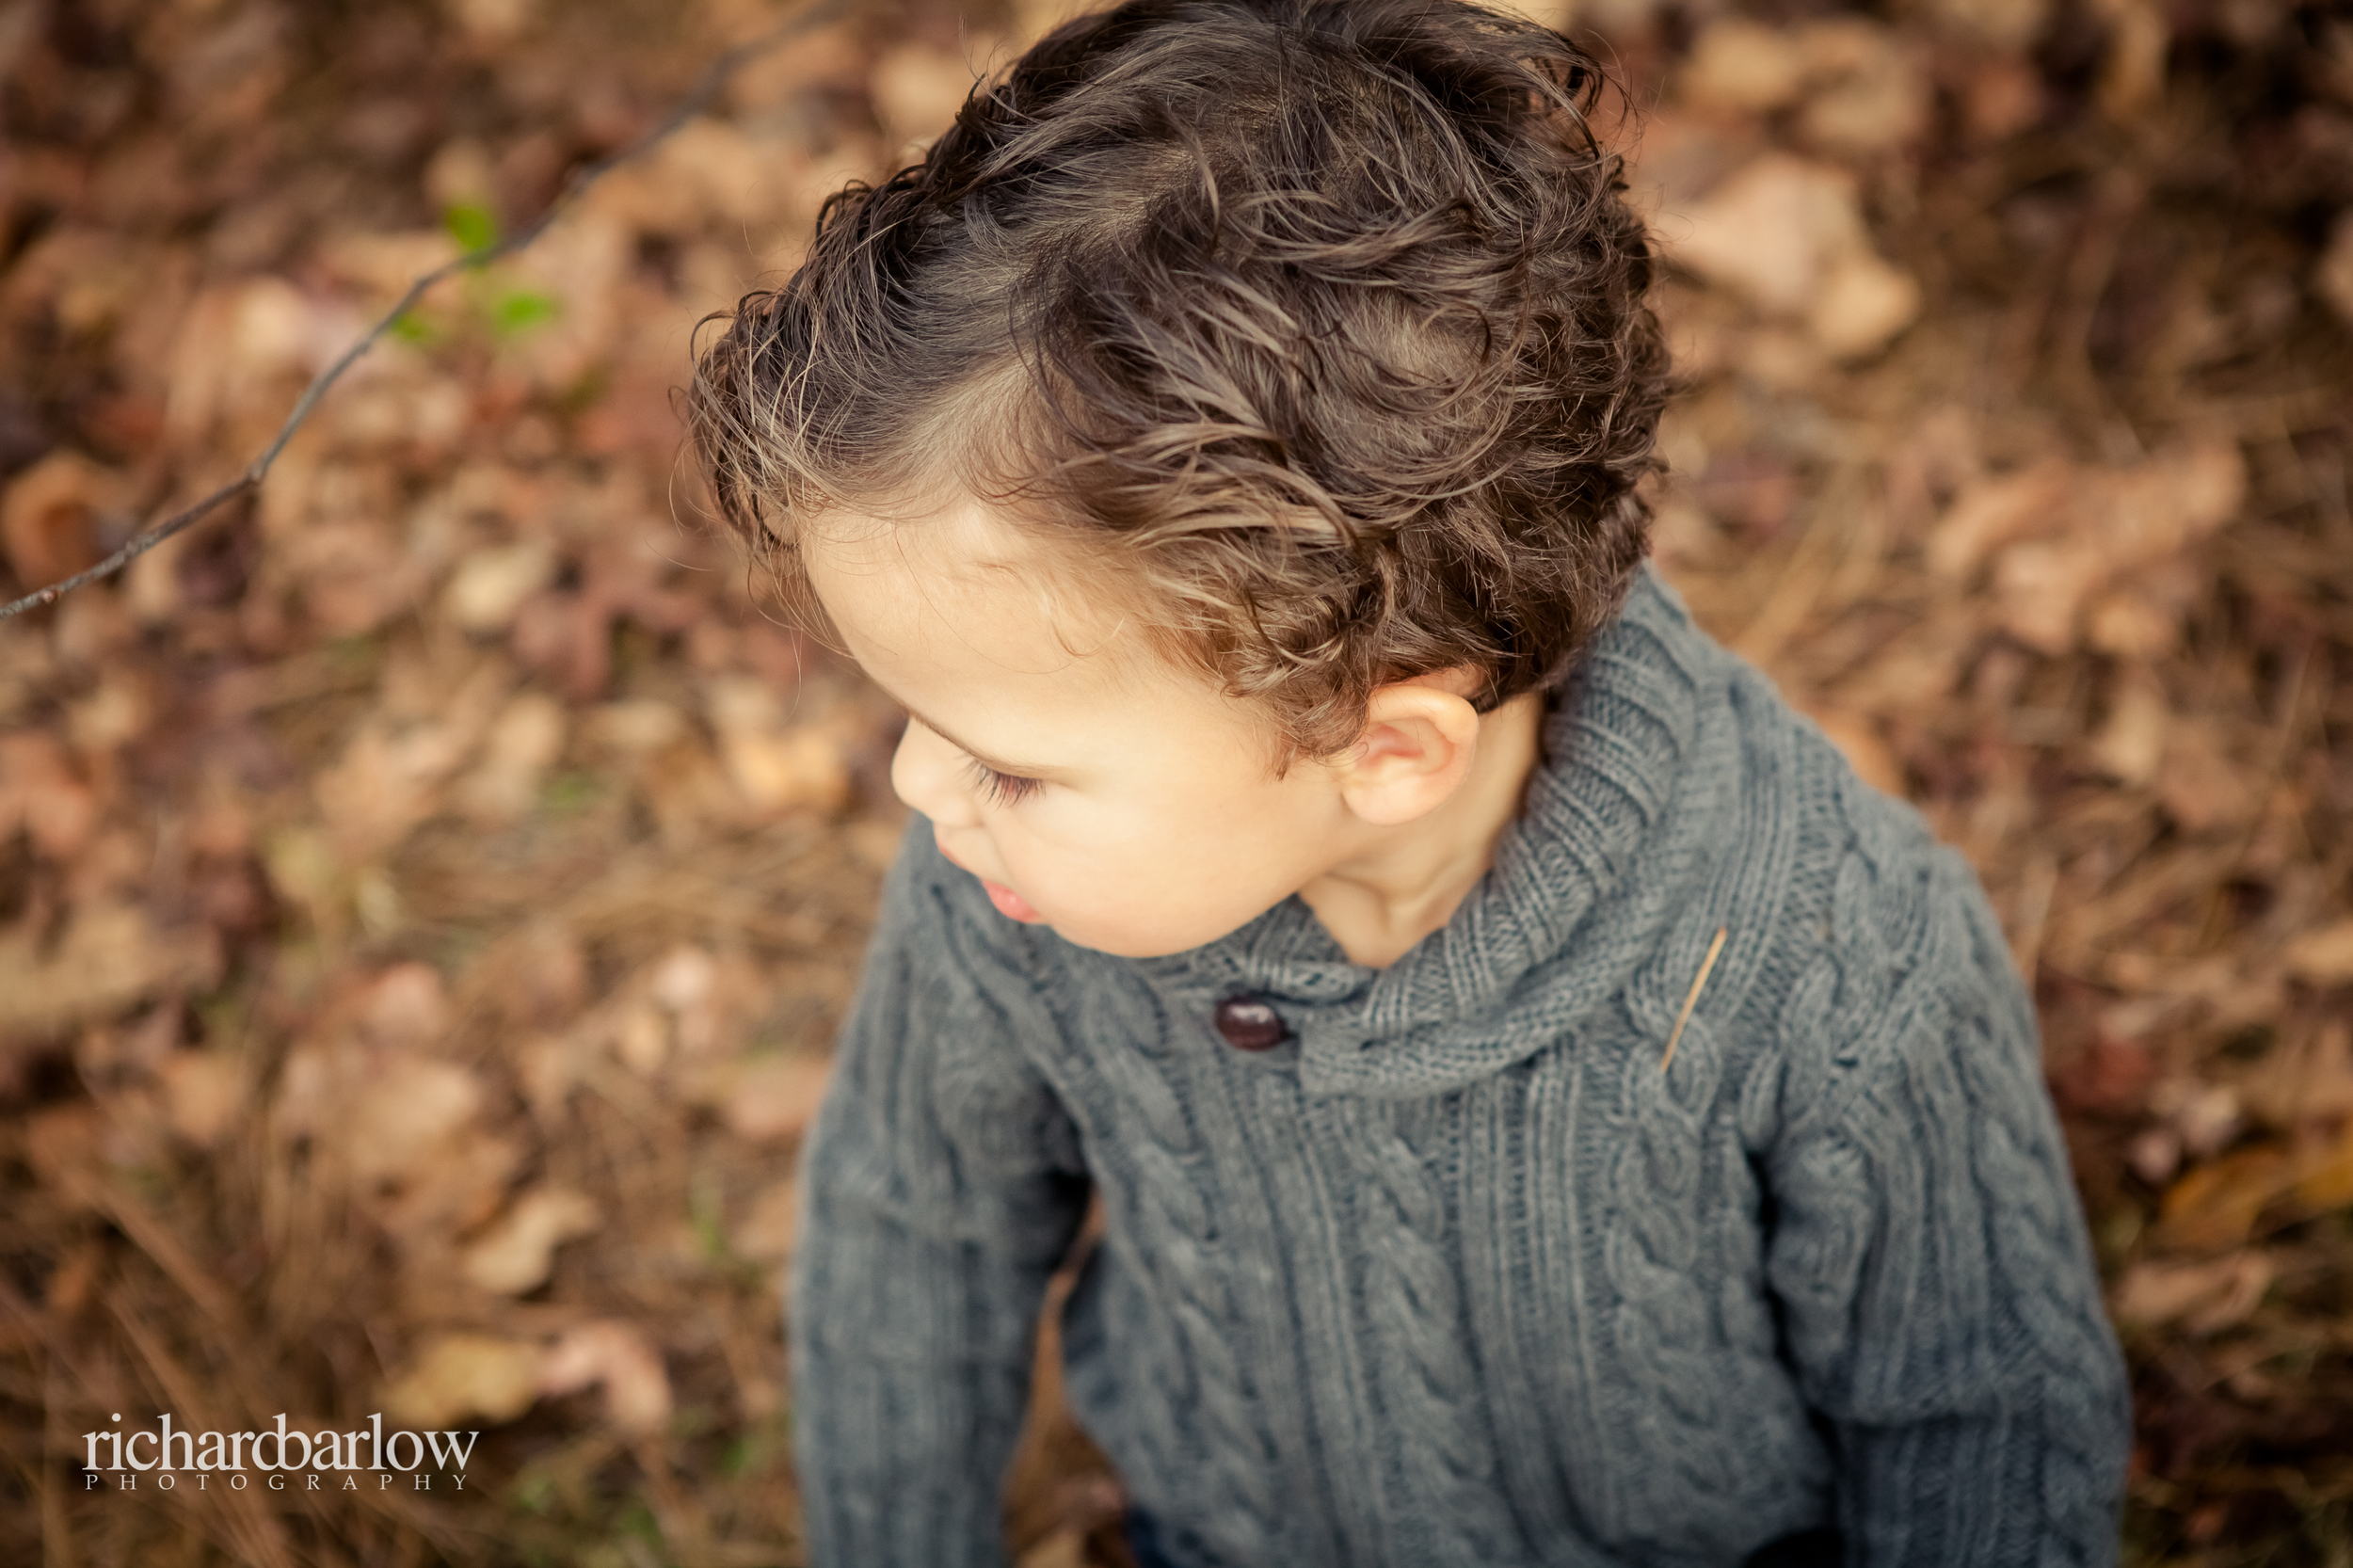 richard barlow photography - Bourne Family Session - Yates Millpond Raleigh-7.jpg